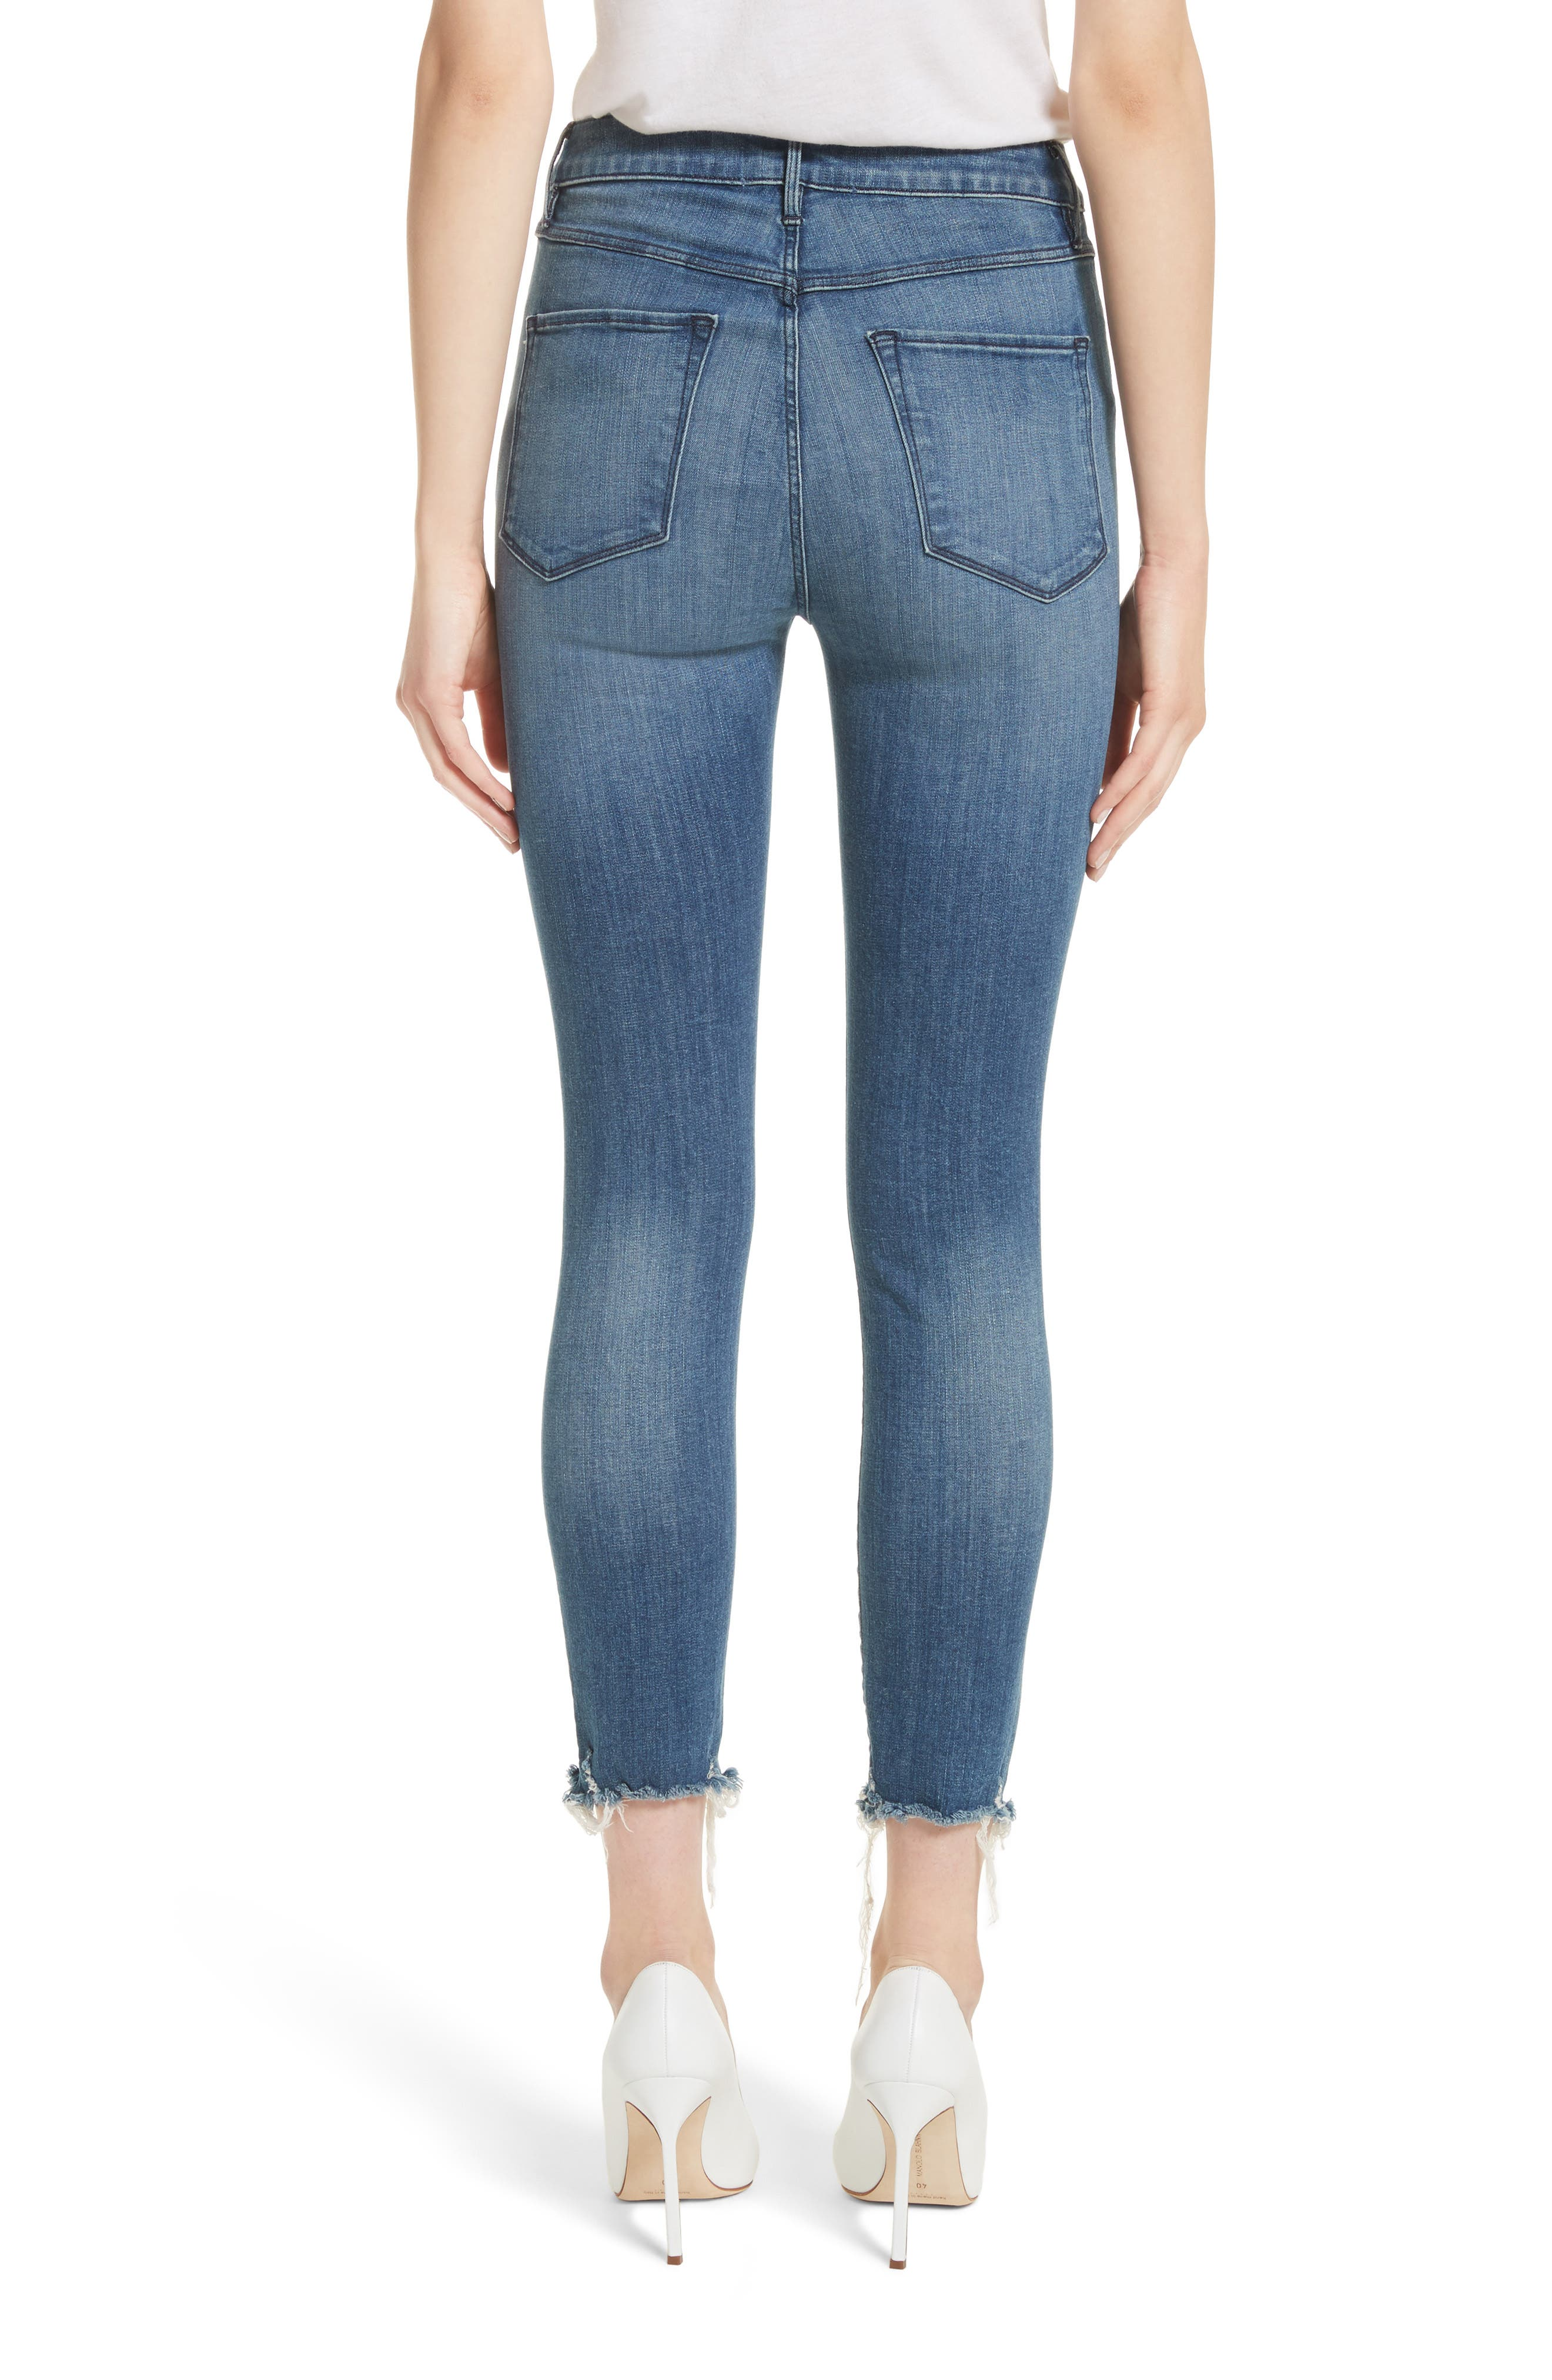 W3 Crop Skinny Jeans,                             Alternate thumbnail 2, color,                             428